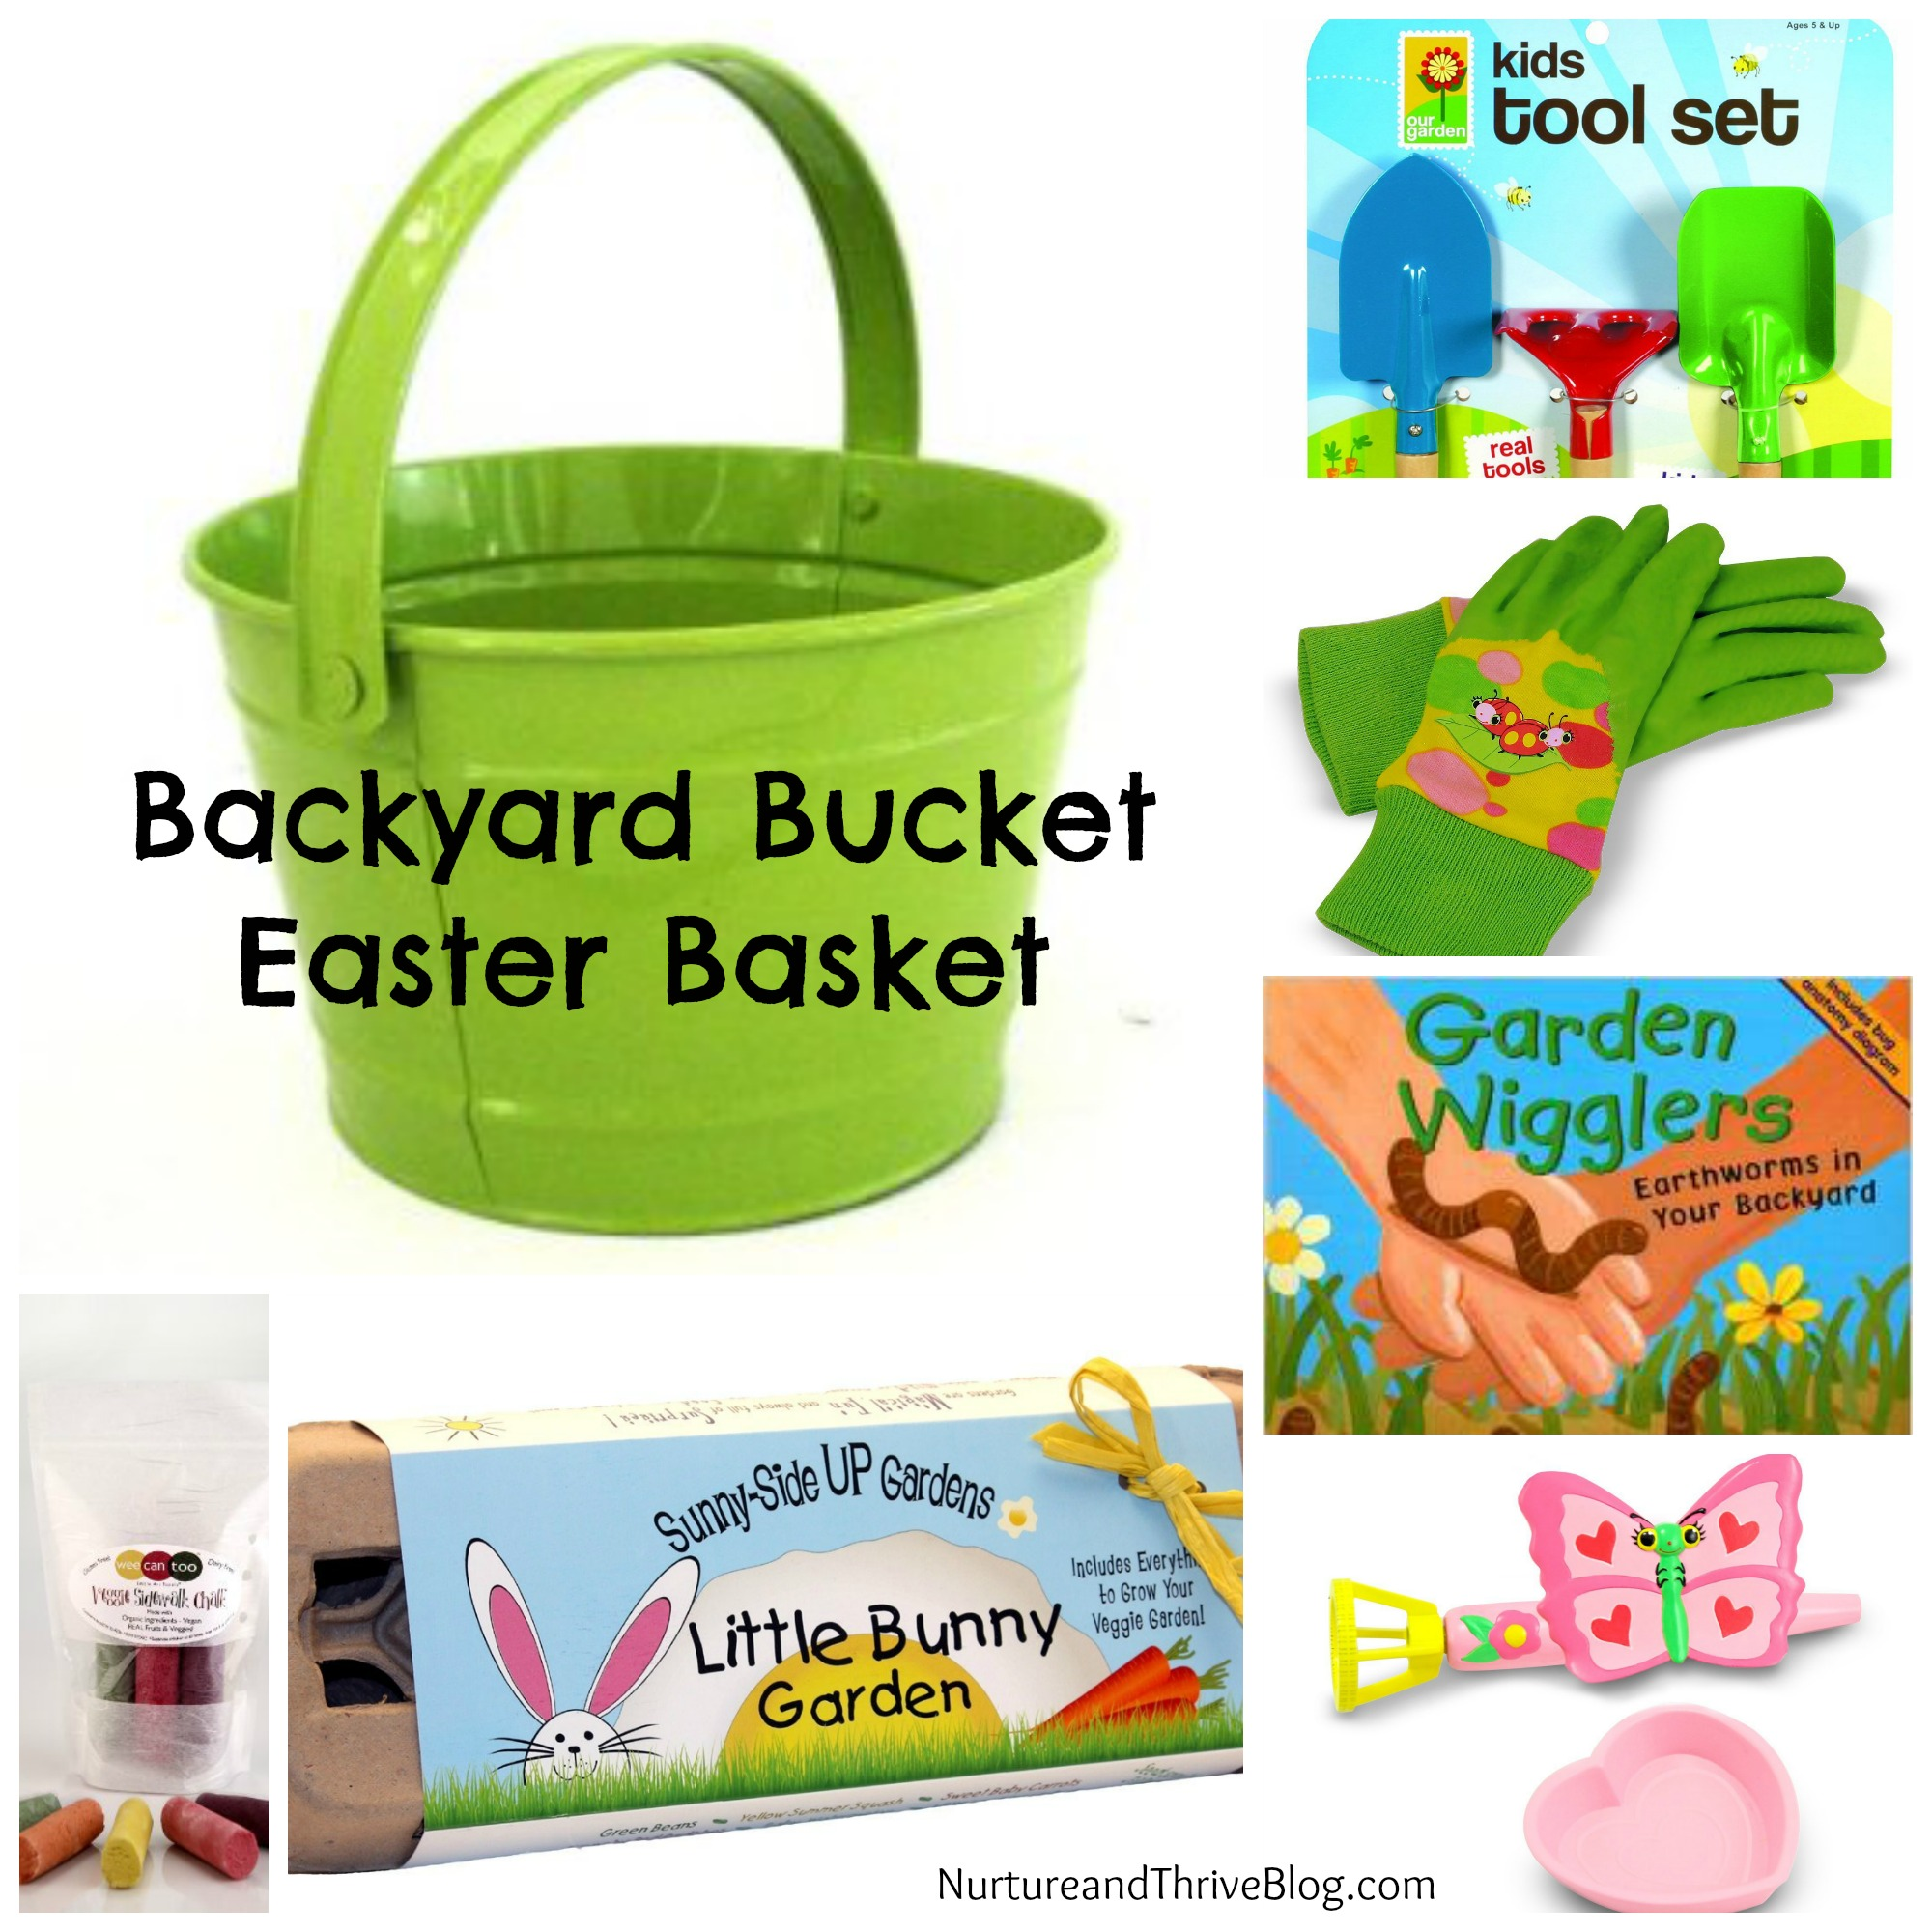 Amazing Thrive Easter Baskets Nurture Kids Easter Basket Backyard Bucket Nurture Thrive Blog Two Nature Med Easter Basket Ideas Nurture Kids Delivery Kids Diy Easter Baskets baby Easter Baskets For Kids